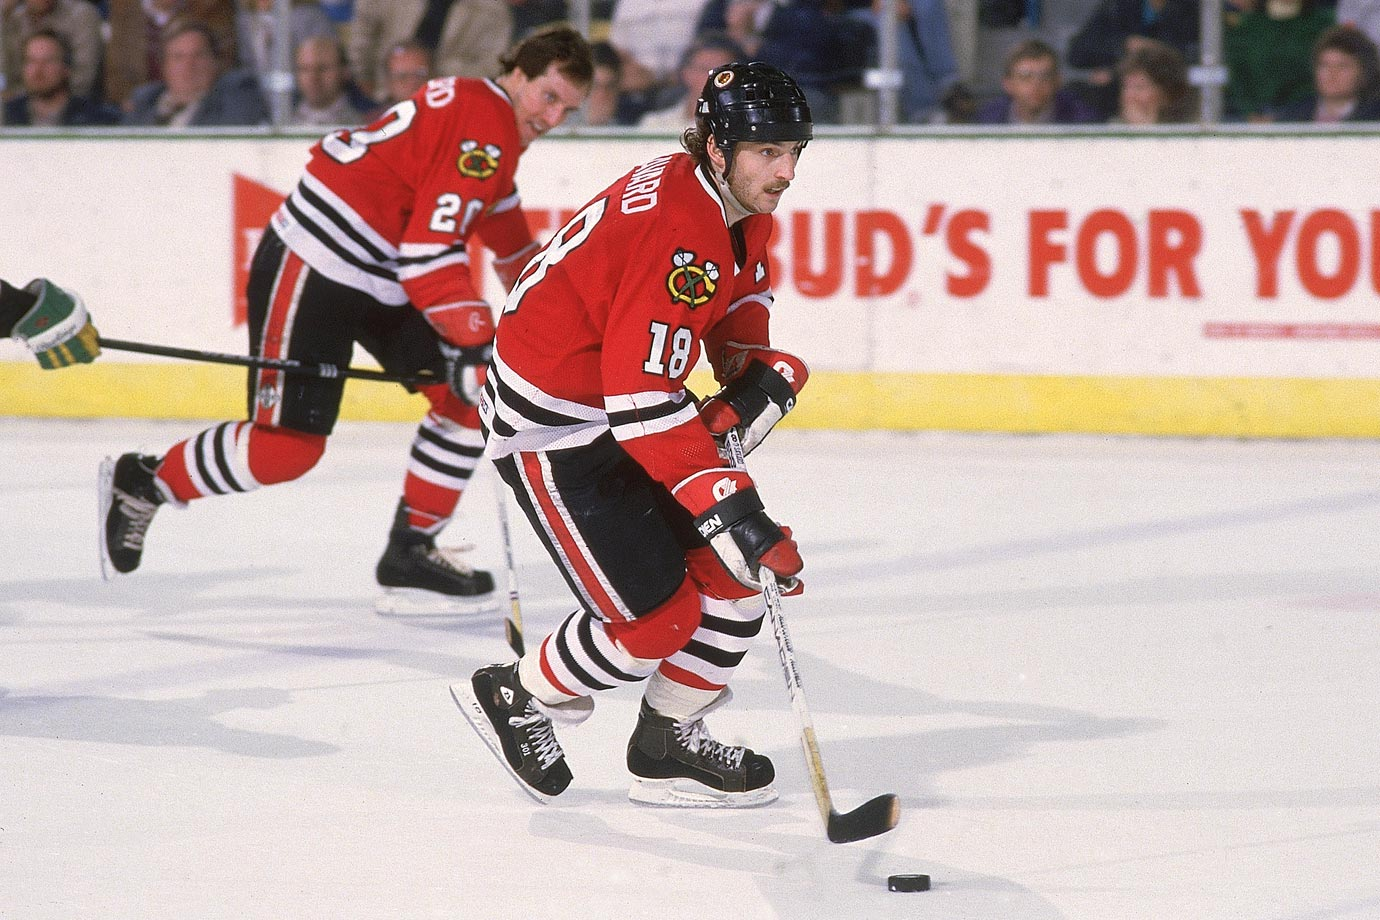 "Drafted third overall by Chicago in 1980, the swift, slick center scored 75 points during his rookie season and followed it with 119 points, the first of five times he would reach or exceed the century mark during his 10 seasons with the `Hawks. Renowned for his ""Savardian Spin-o-Rama"" move, he ranks fourth on the franchise's all-time goals scored list with 377, second in assists (719) and third in points (1,096). He never played in a Stanley Cup Final for the `Hawks, missing their 1992 appearance after his trade to Montreal in 1990, but he finished his career in Chicago and was inducted into the Hockey Hall of Fame in 2000. He also served as the `Hawks coach from 2006-08."